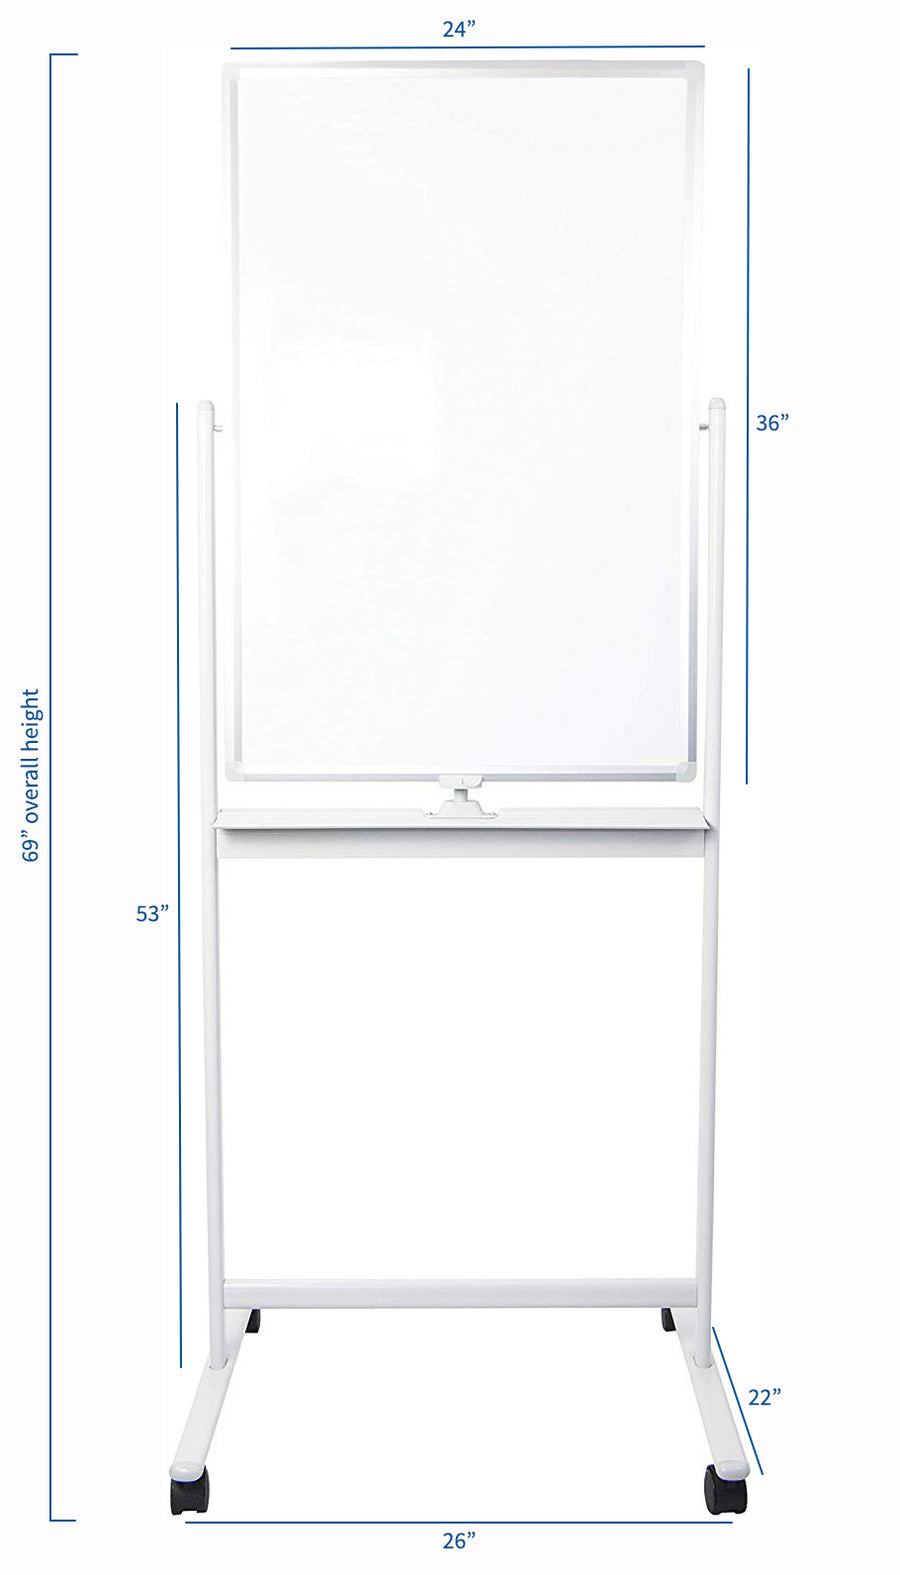 "CART-WB24A <br><br>24"" x 36"" Mobile Double Sided Dry Erase Board"